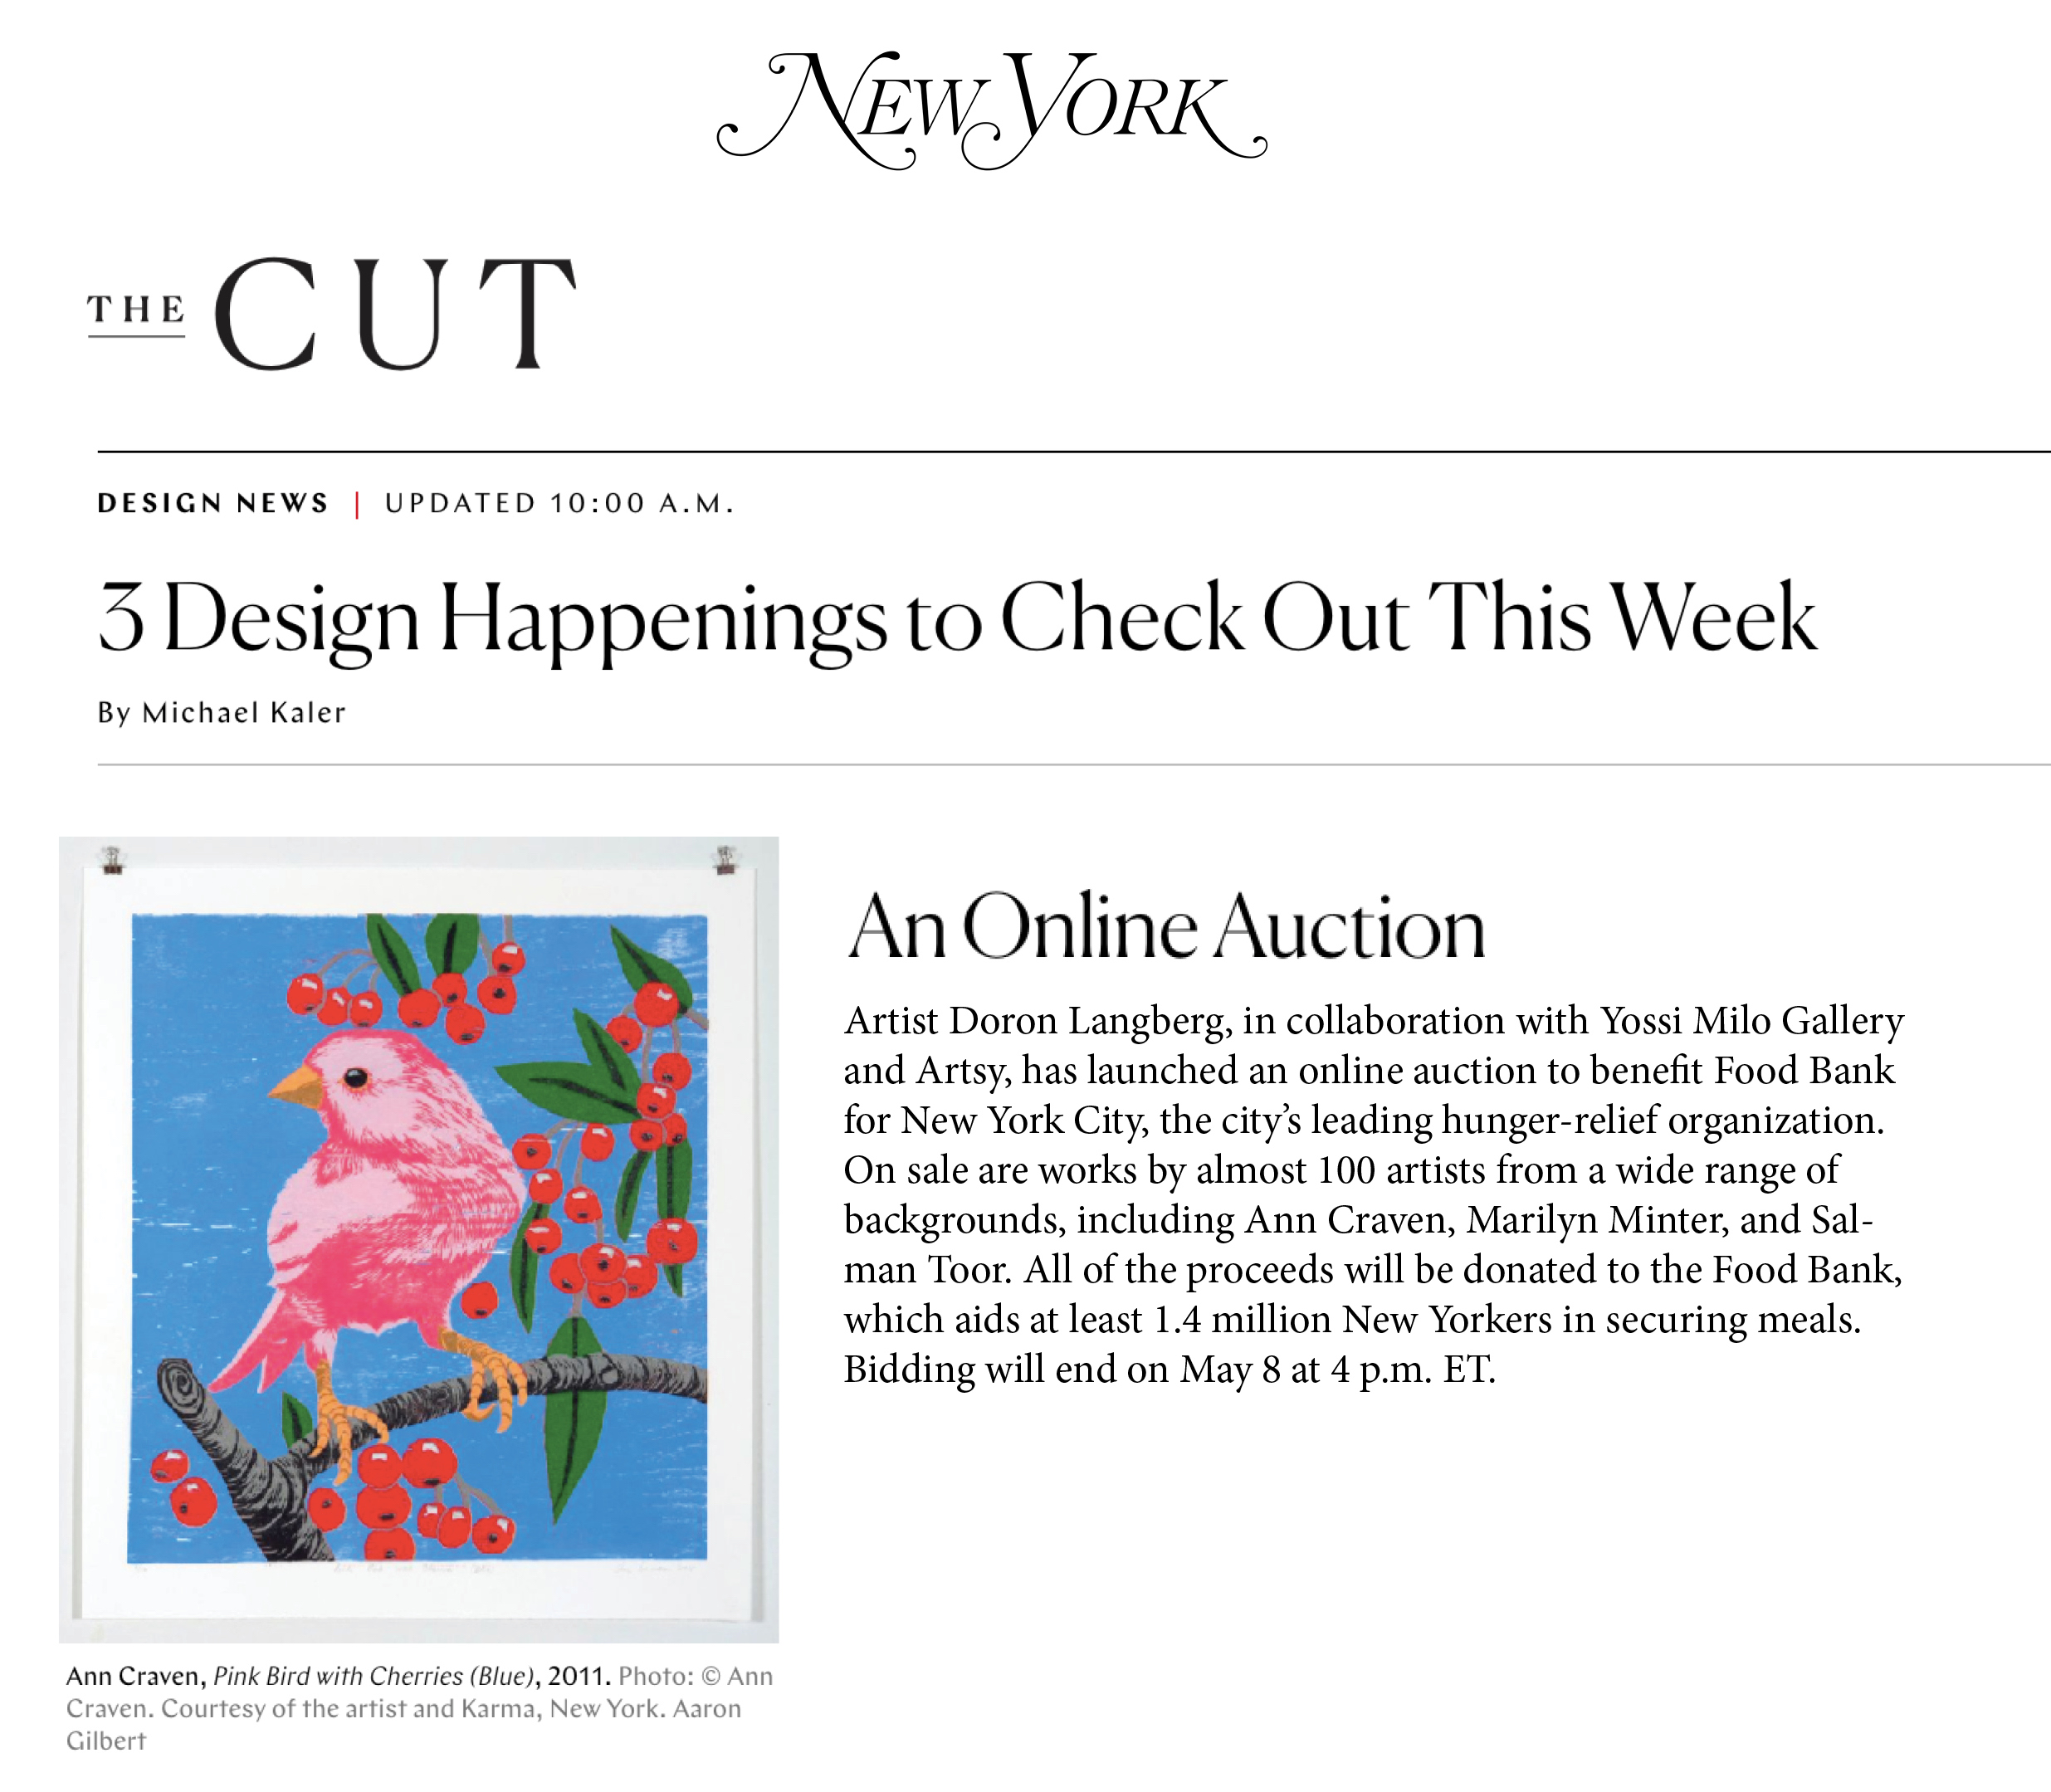 20200501_NYMAG